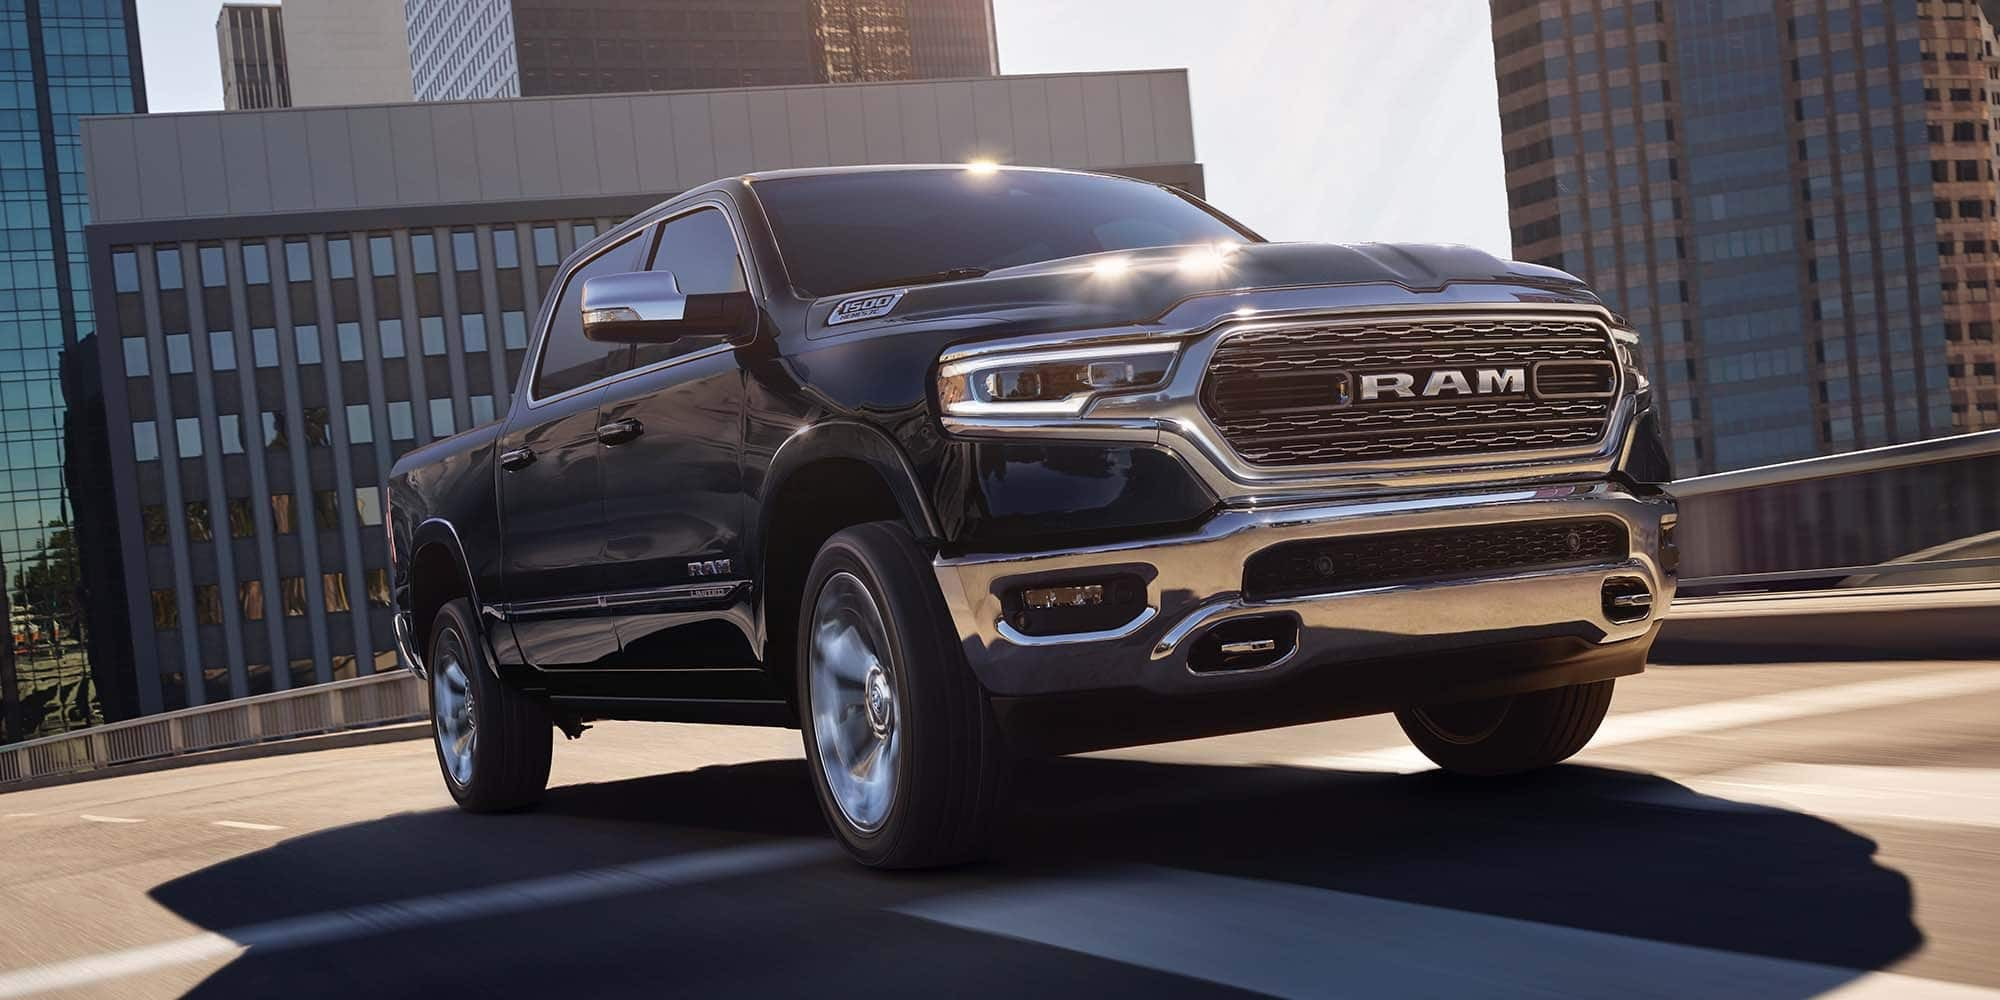 New 2019 ram 1500 for sale near ocean city nj middle township nj lease or buy a new 2019 for Dodge ram exterior accessories